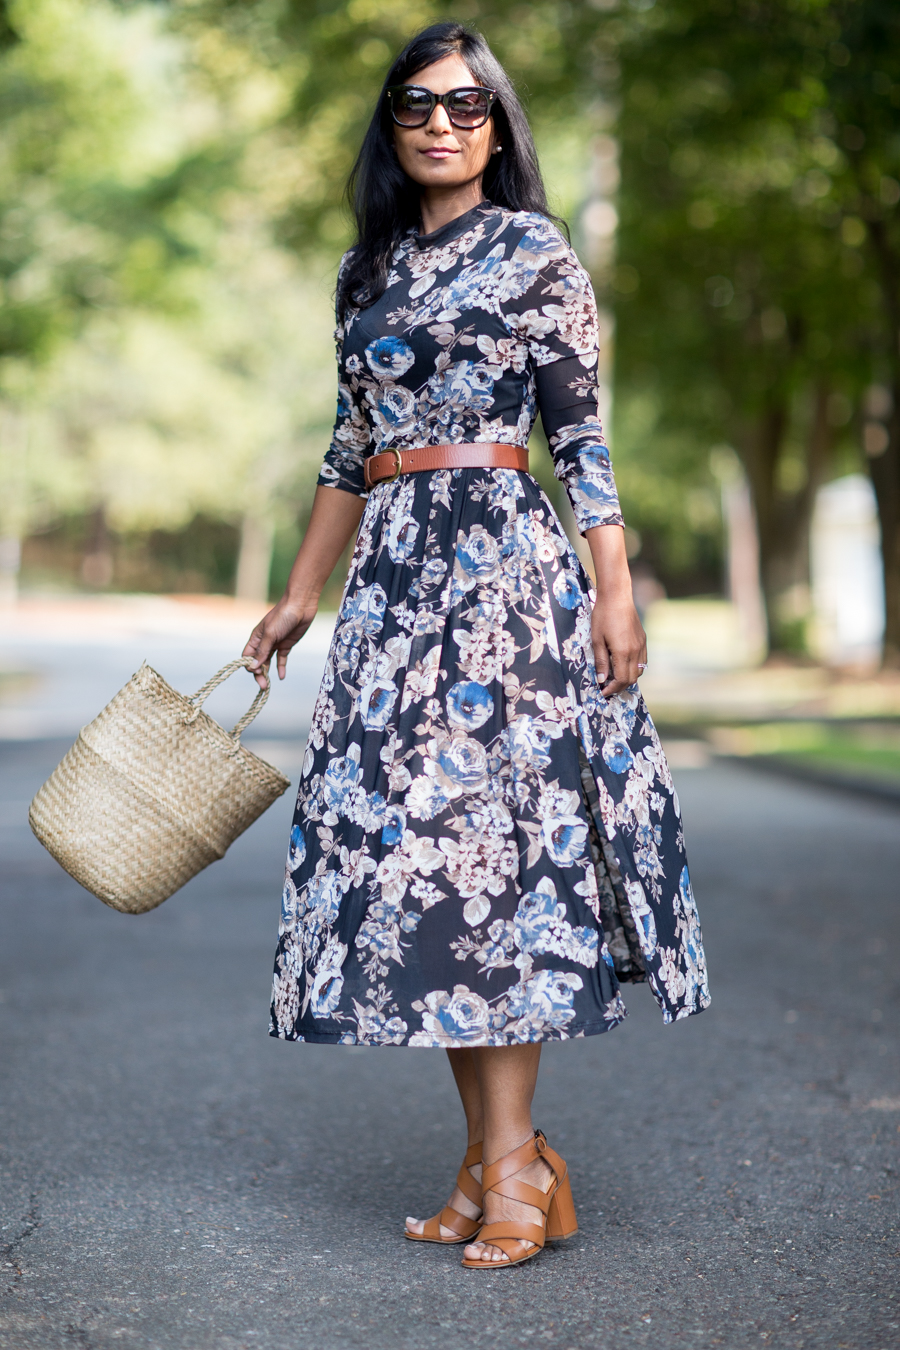 Floral Dresses for Summer to Fall